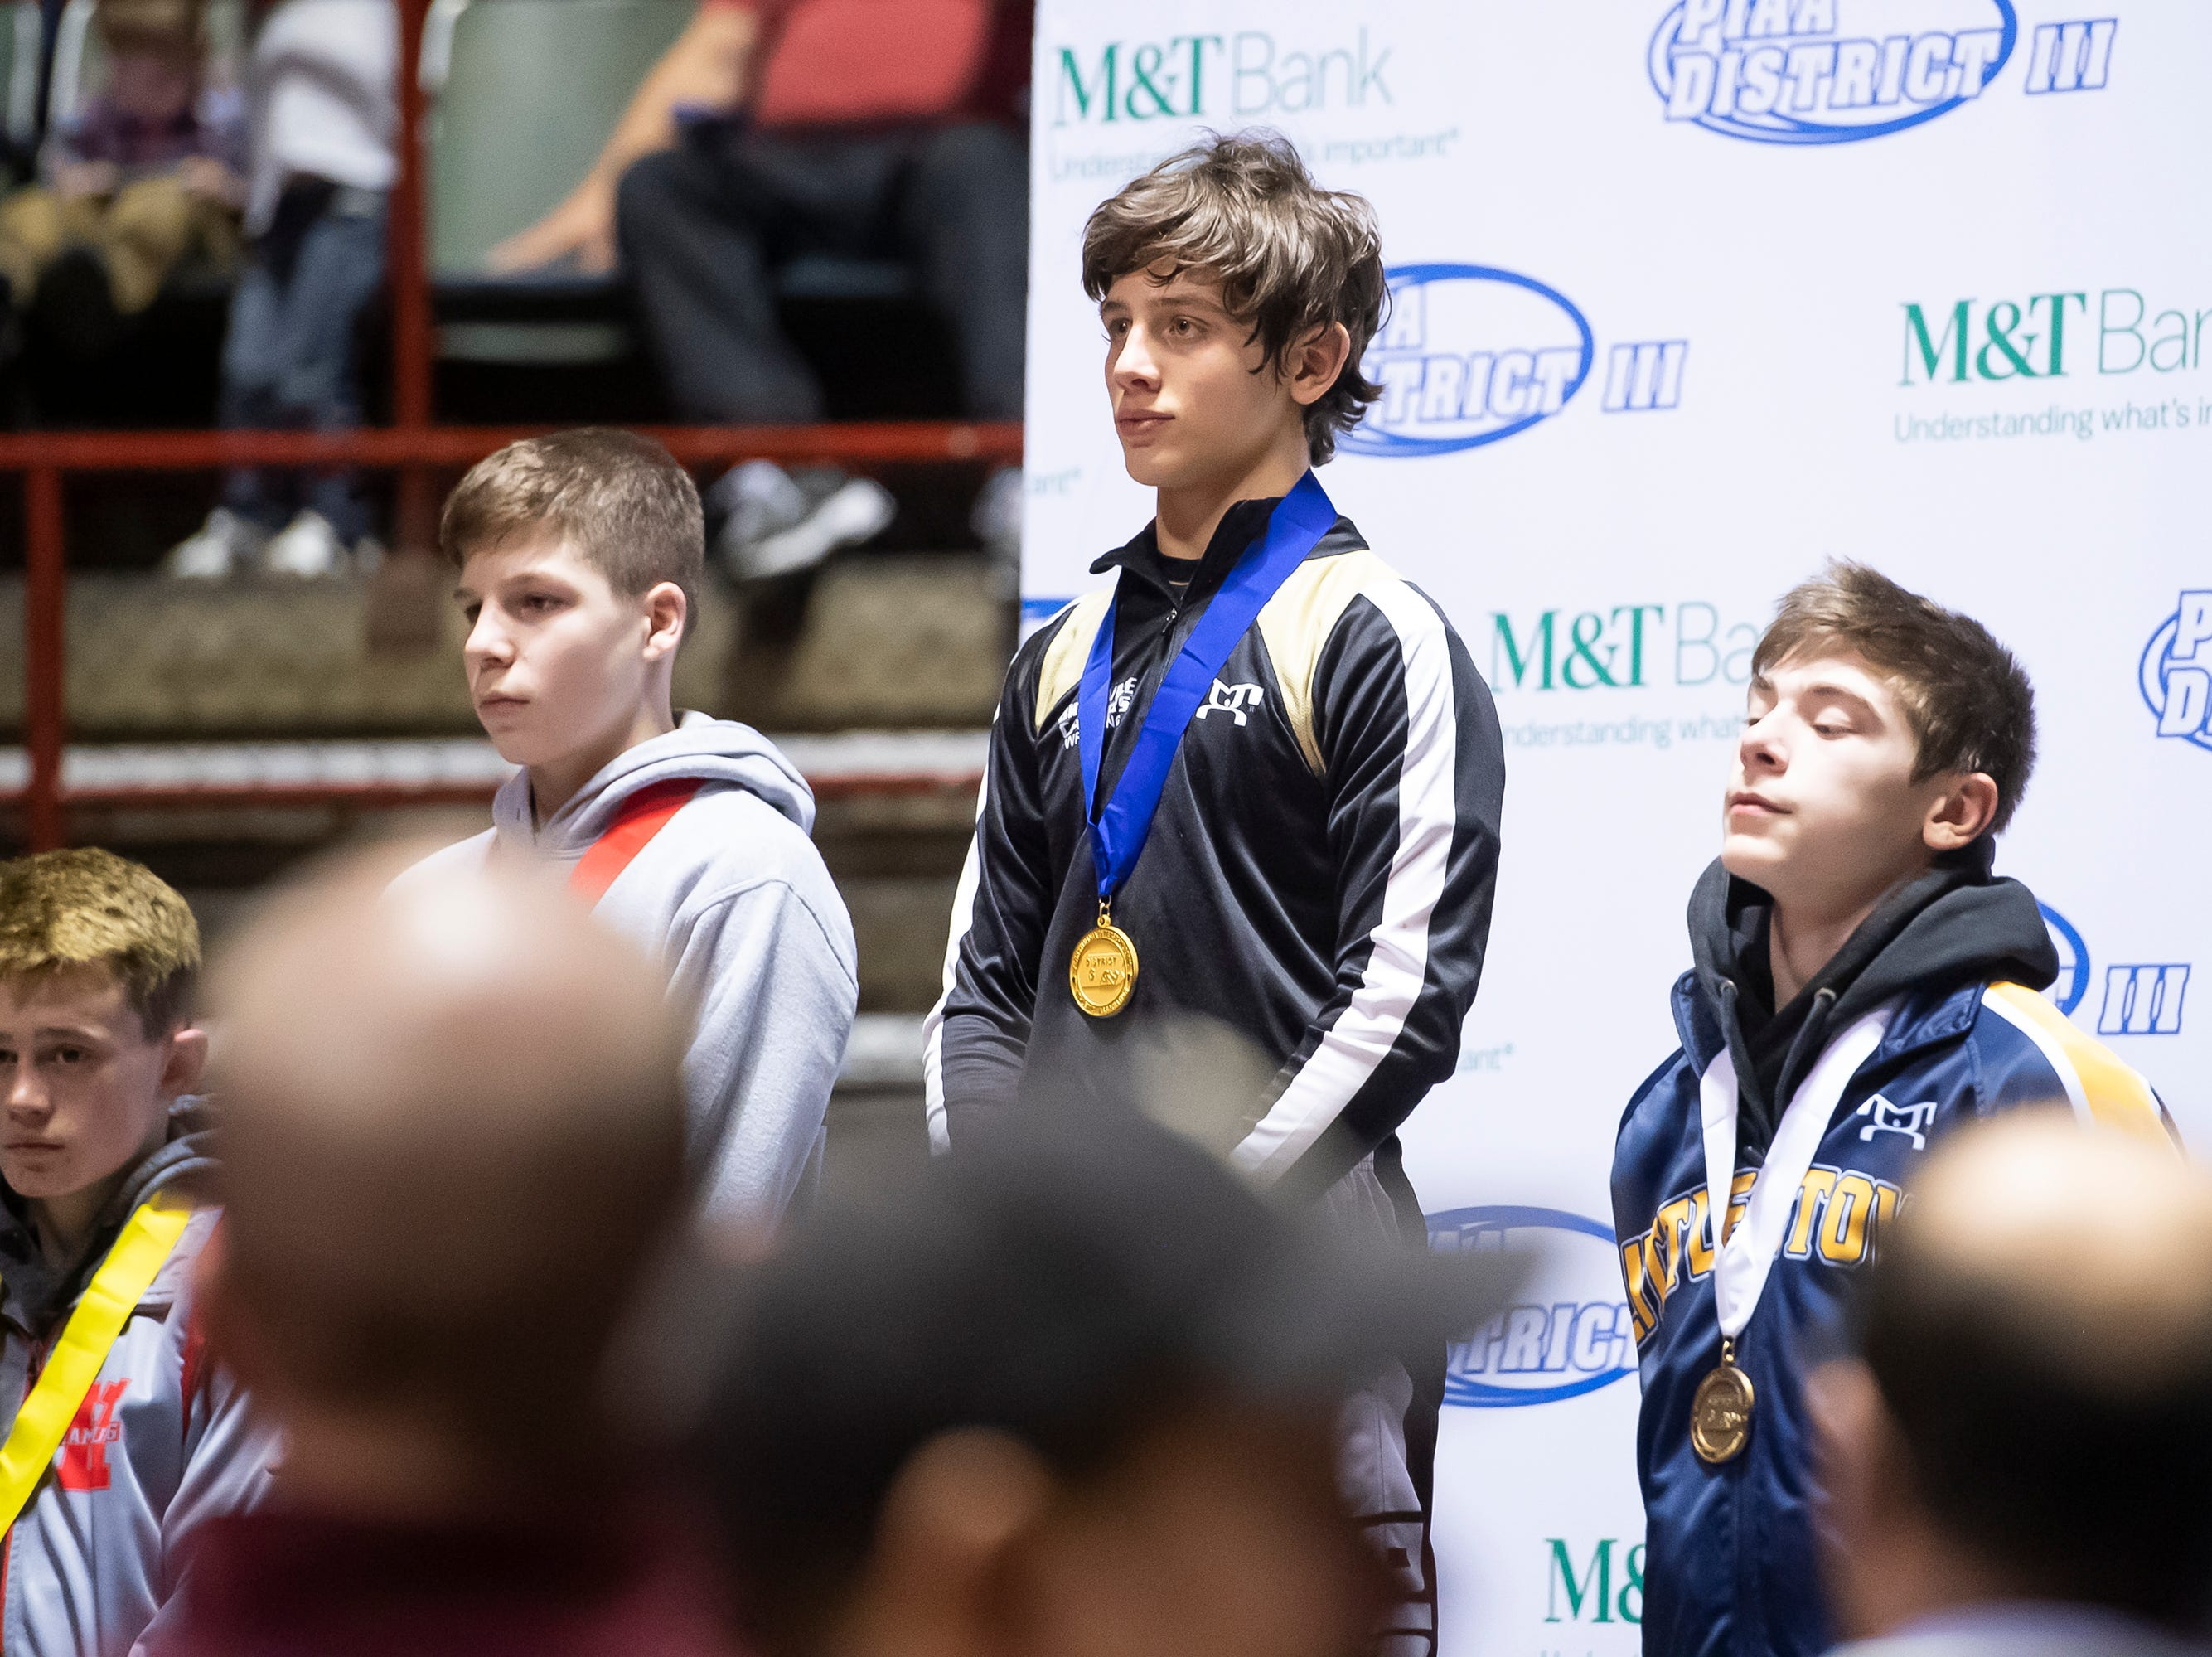 Biglerville's Levi Haines, center, and Littlestown's Connor Brown, right, stand on the podium after placing first and third, respectively, at the District 3 wrestling championships at Hersheypark Arena Saturday, February 23, 2019.